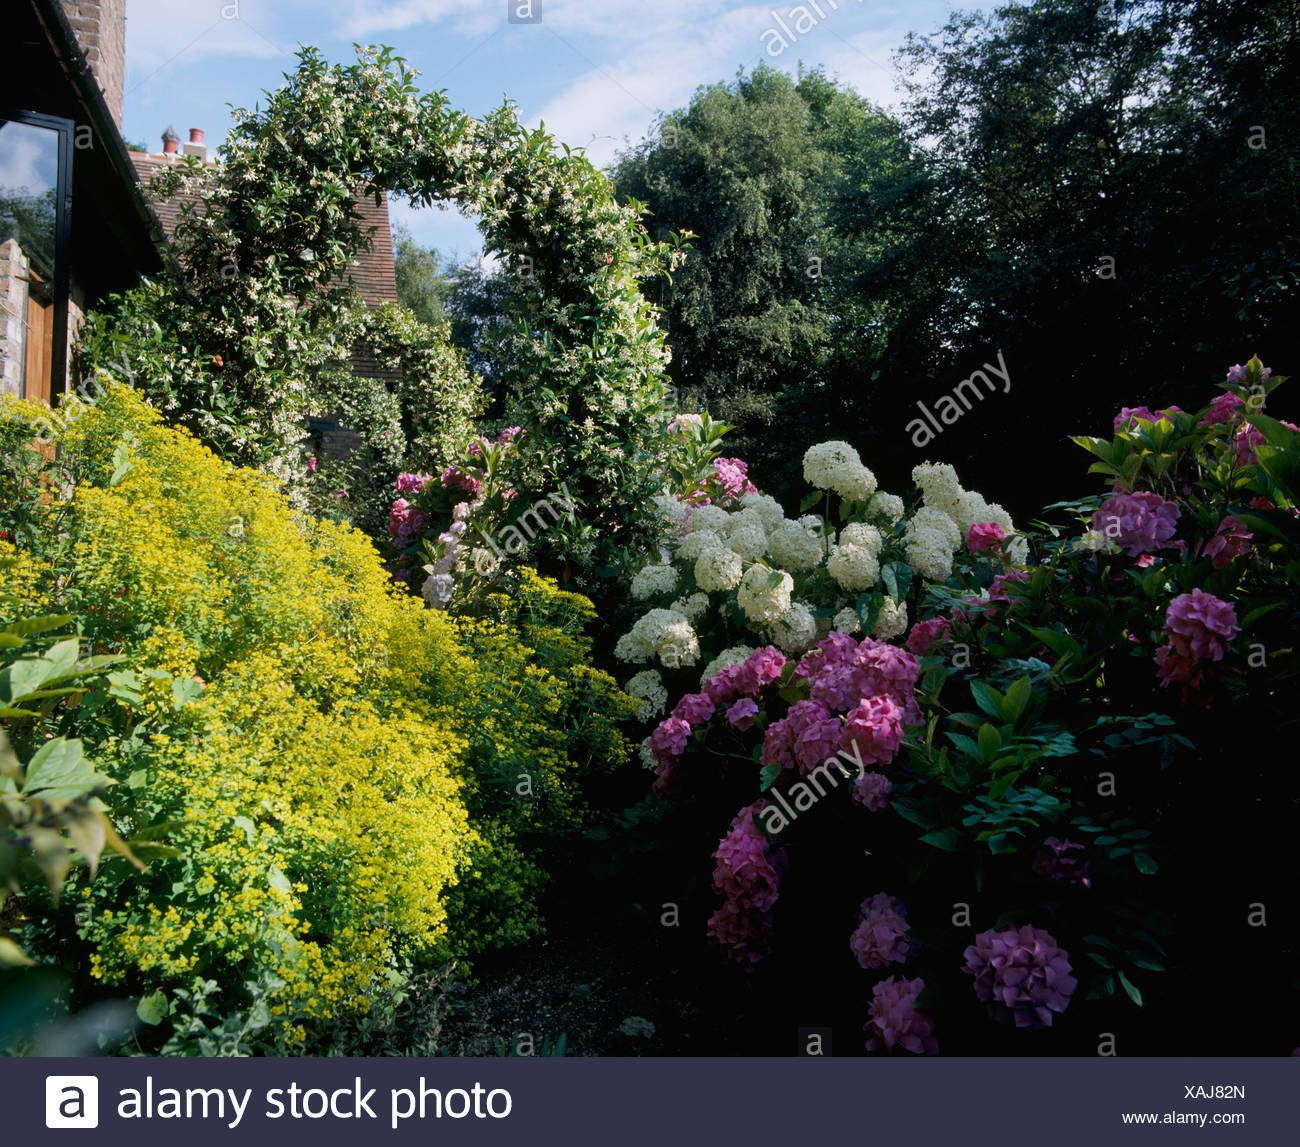 White And Pink Hydrangeas And Yellow Flowering Shrub In Country